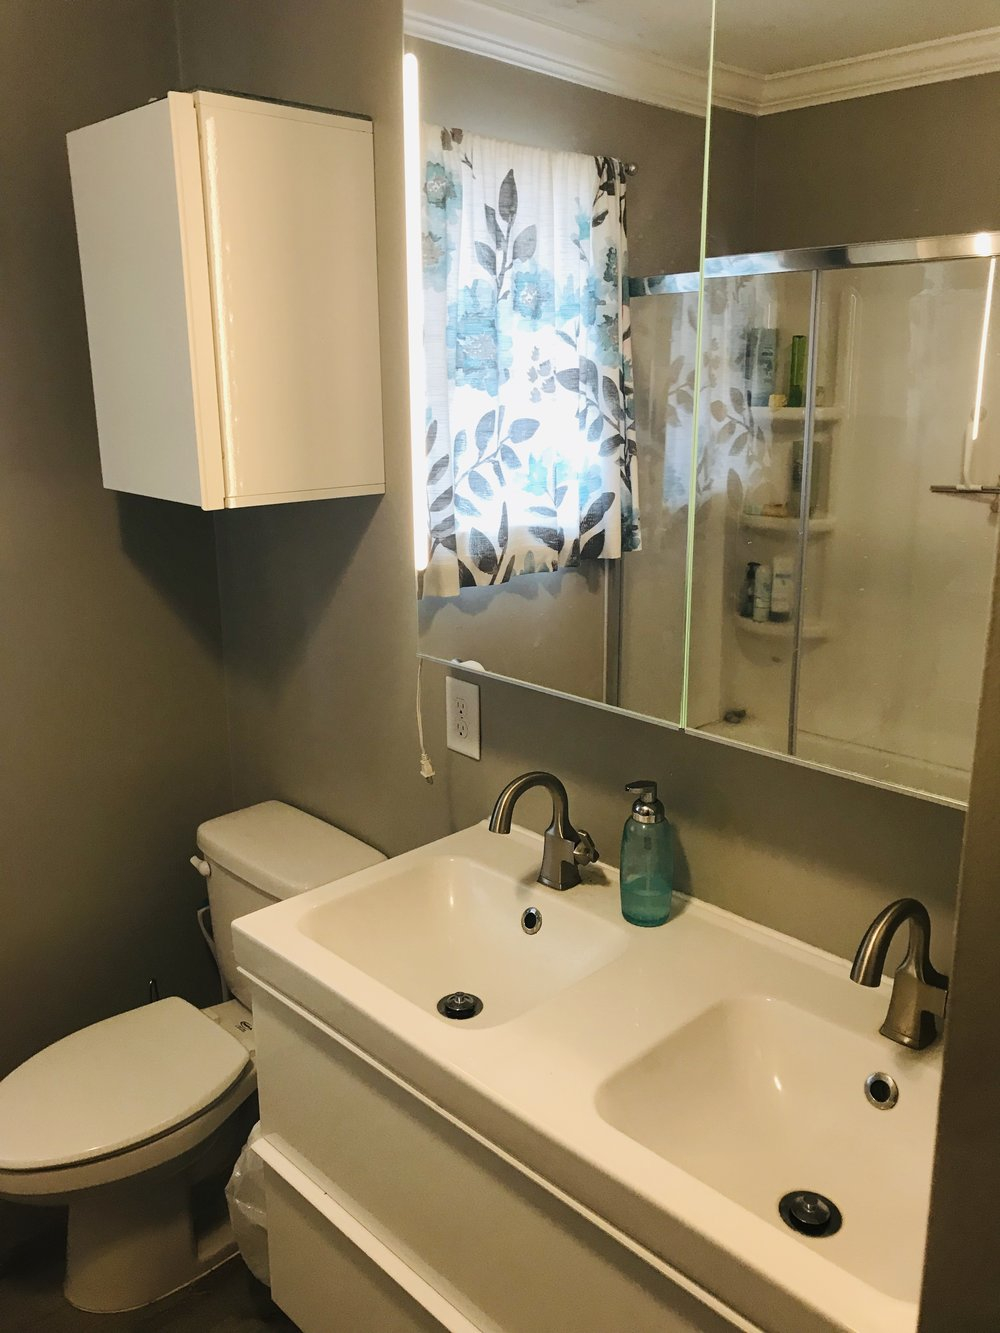 We were able to find a smaller double vanity that fit this space so that two kids could brush teeth/wash up at the same time.